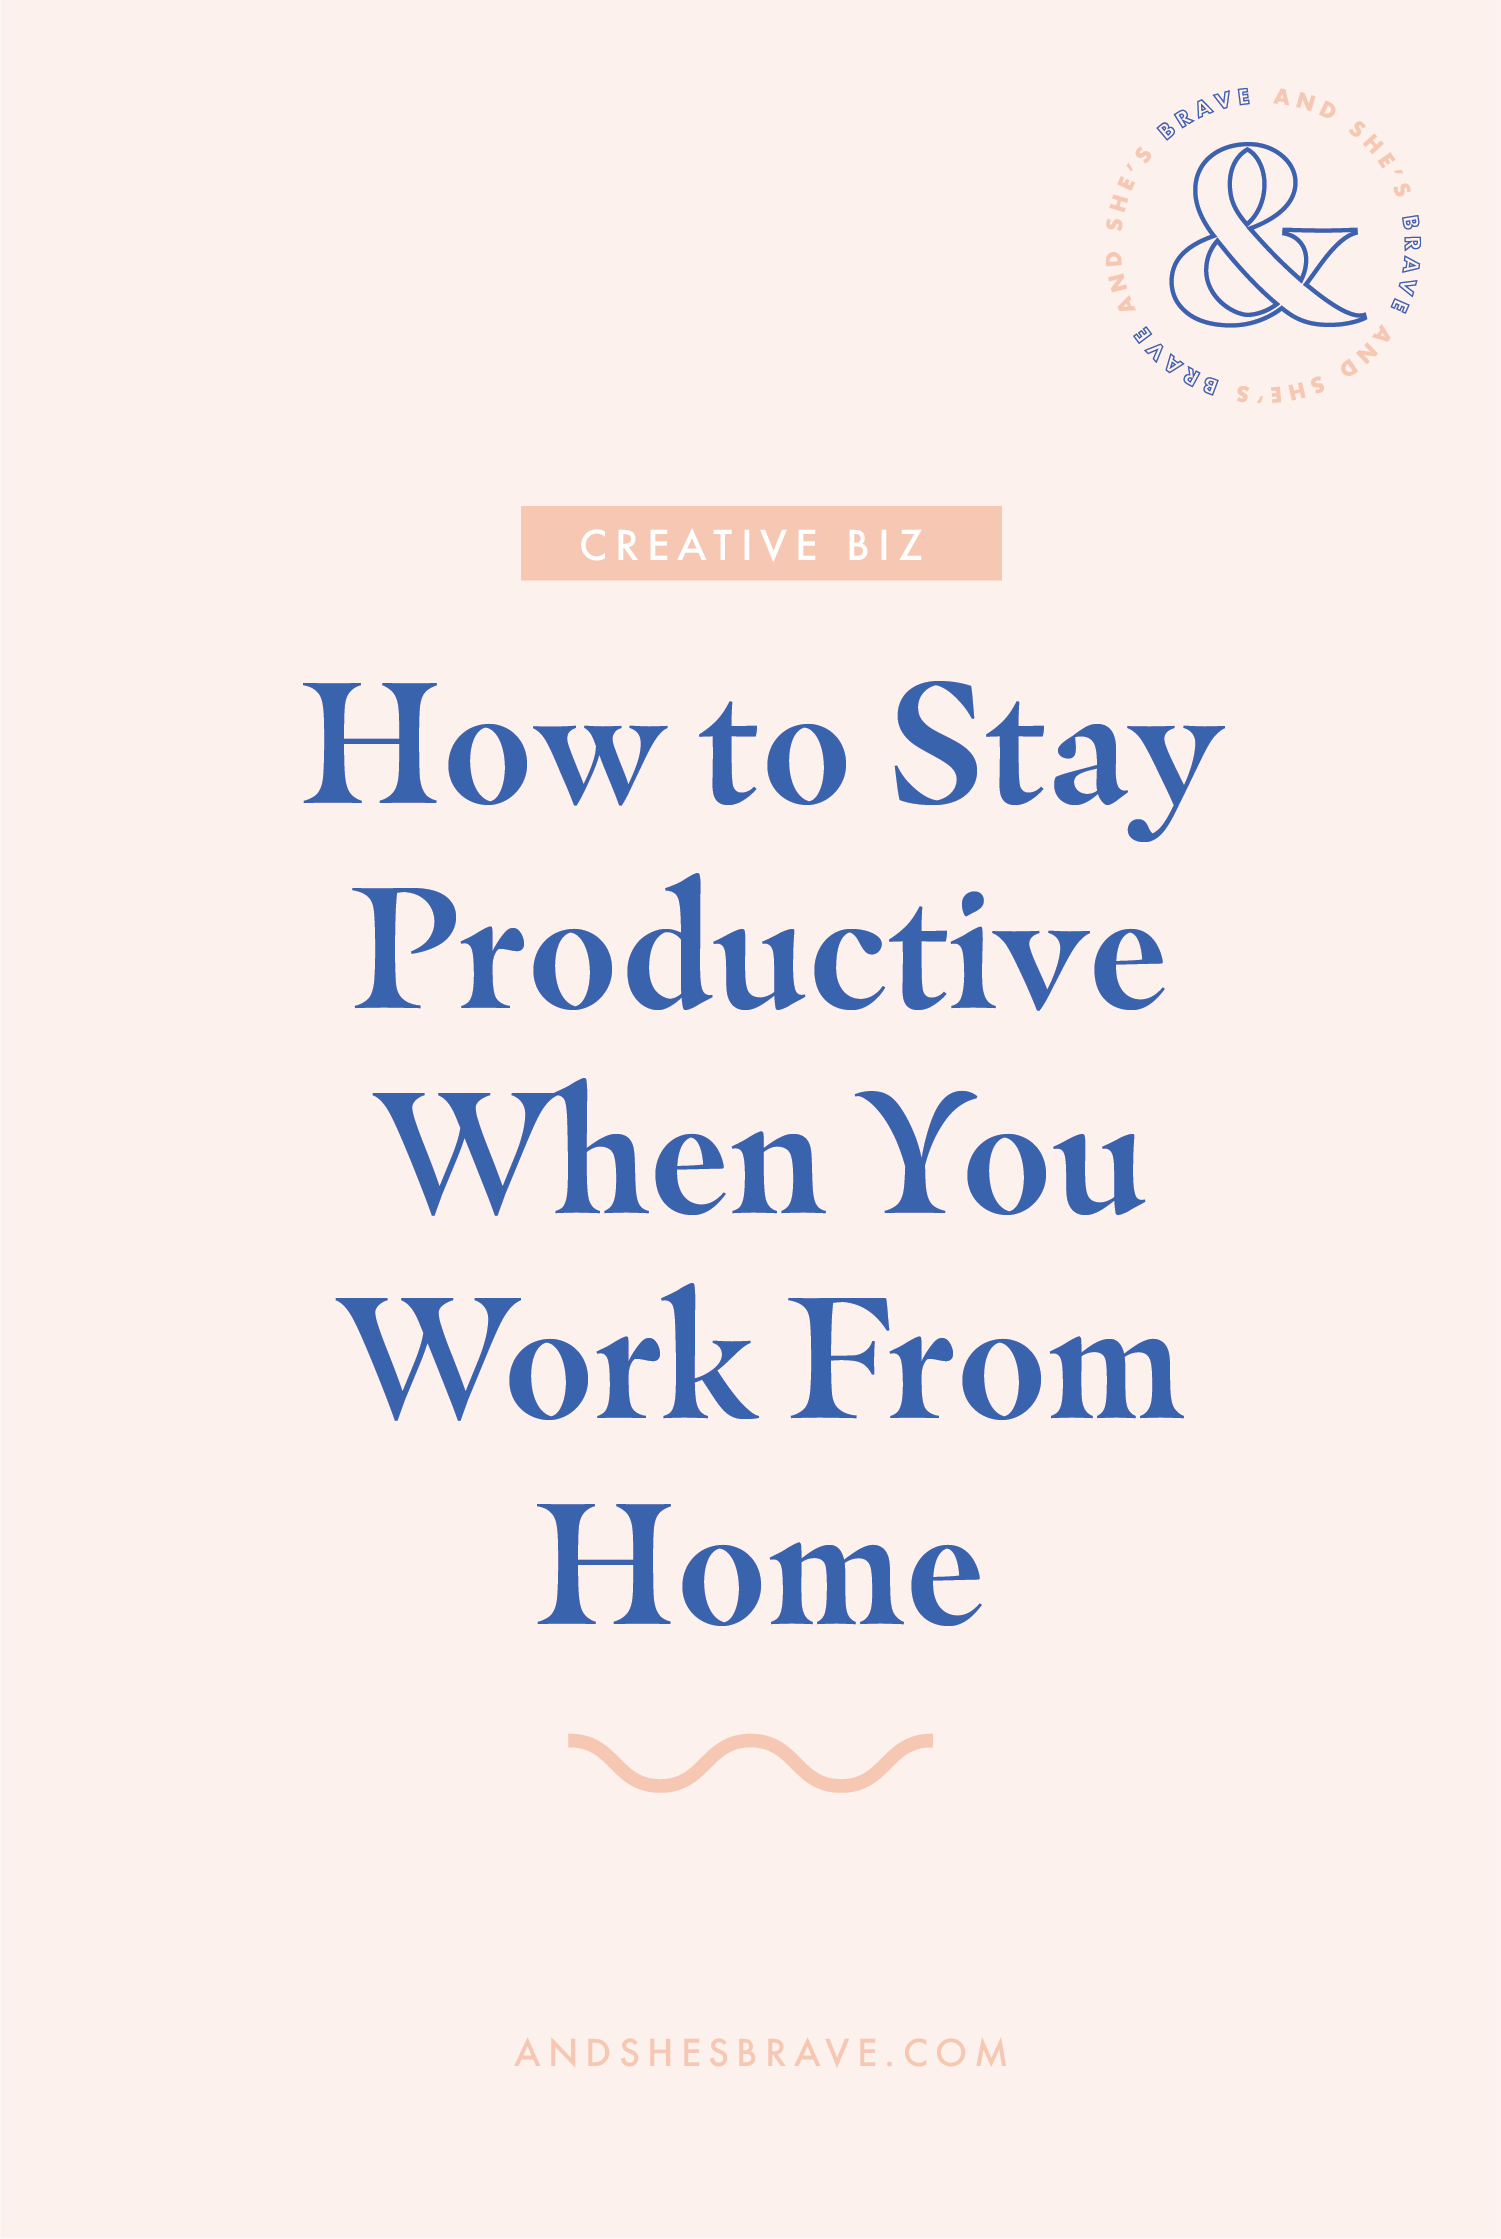 how to stay productive when you work from home-02.png